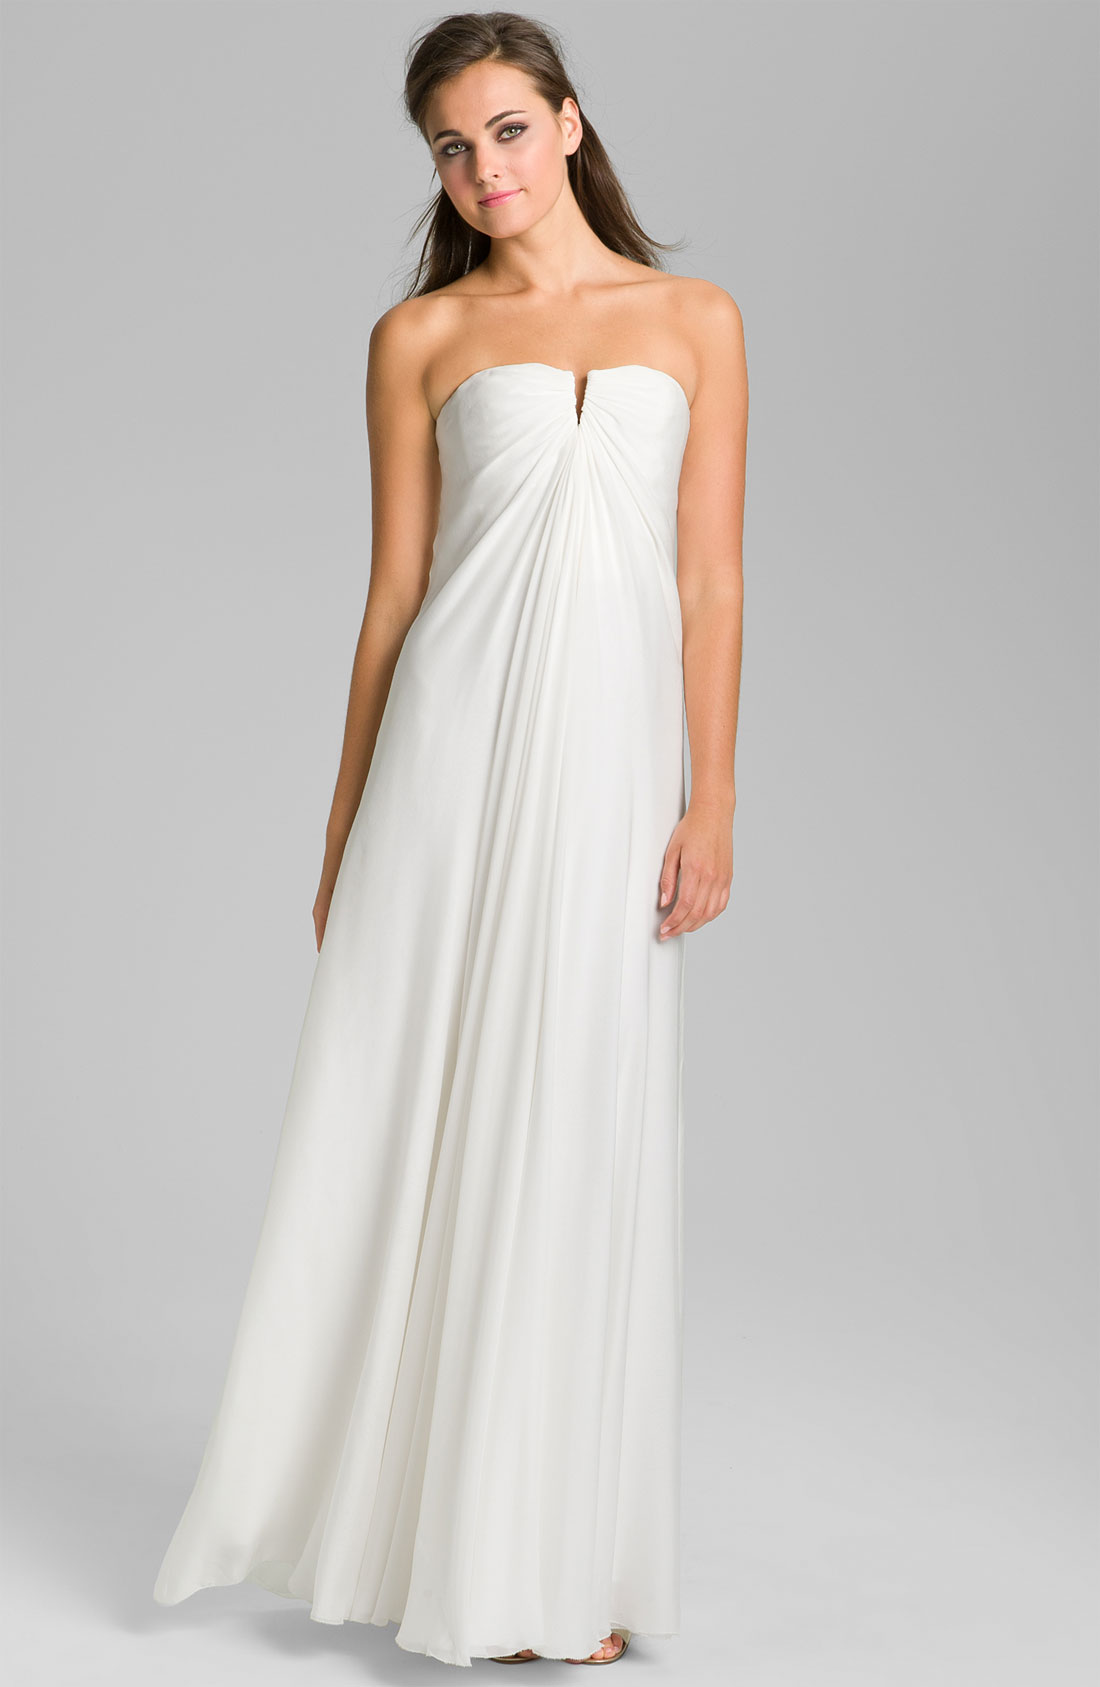 New nicole miller strapless silk chiffon bridal dress gown for Nicole miller dresses wedding